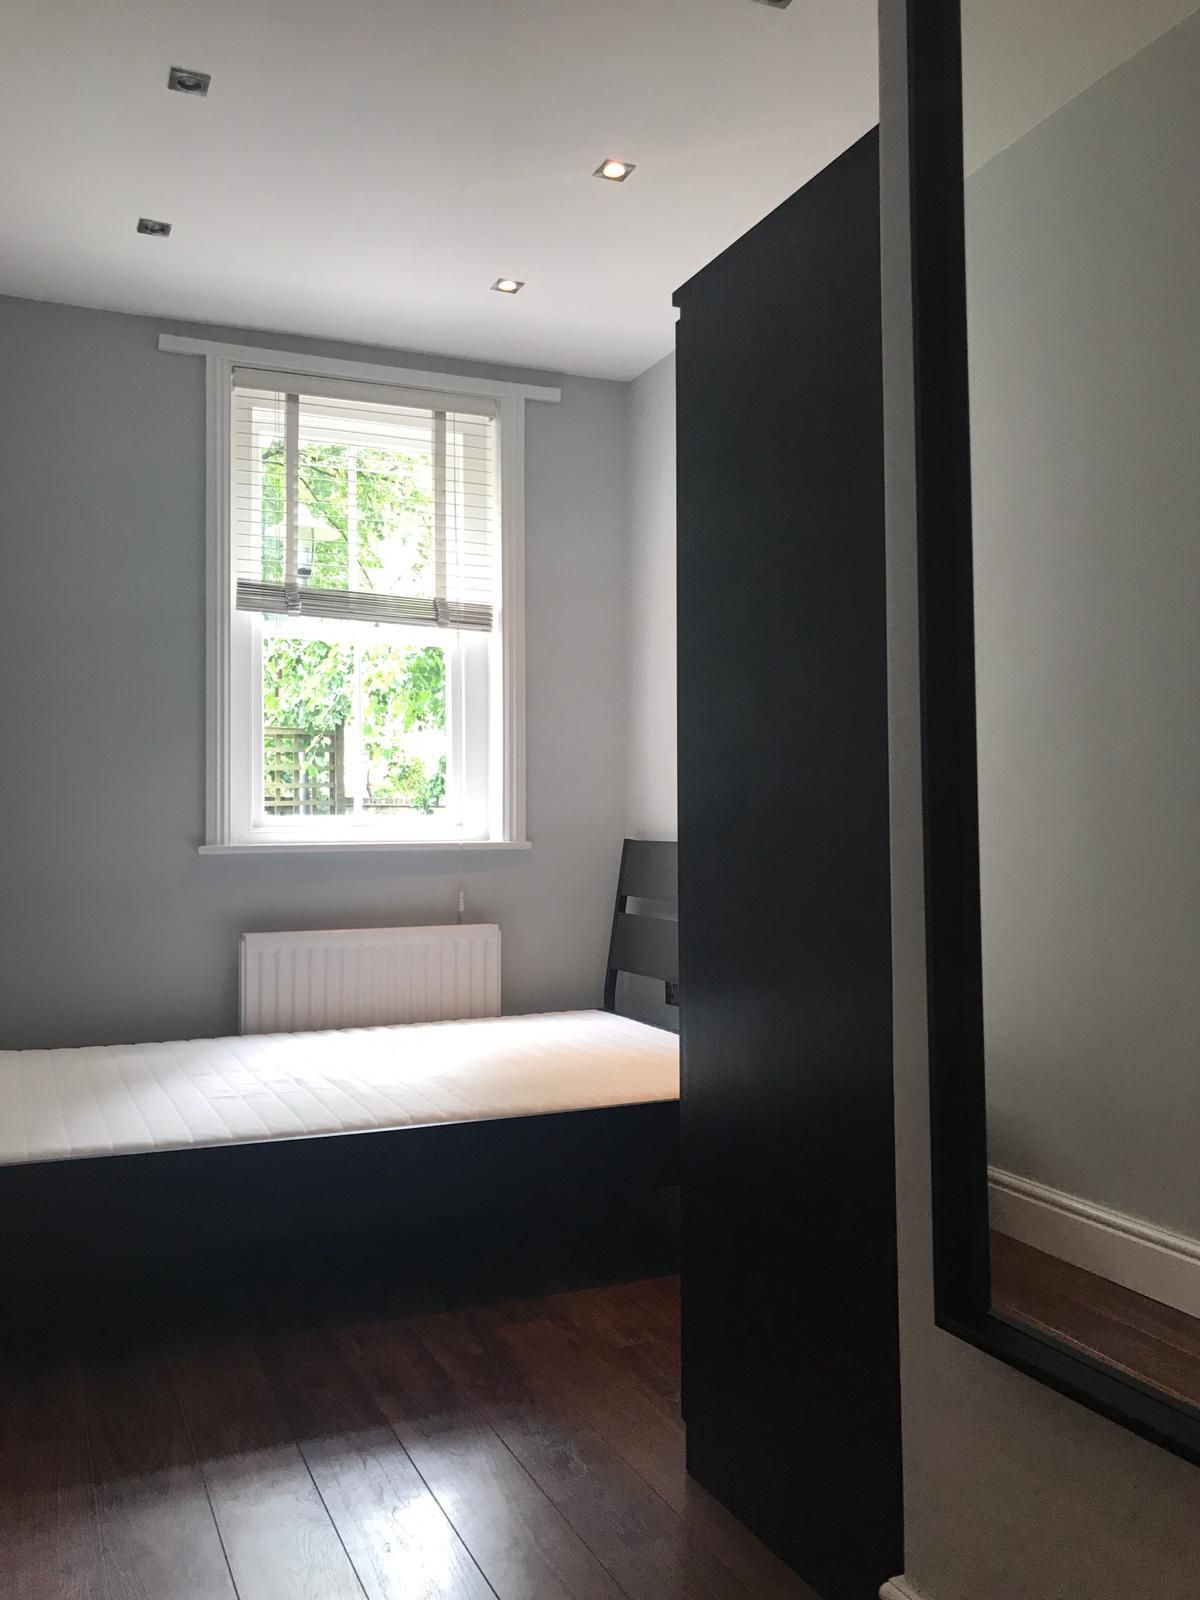 2 bedroom flat flat/apartment To Let in London - Bedroom 2/Double glazed windows